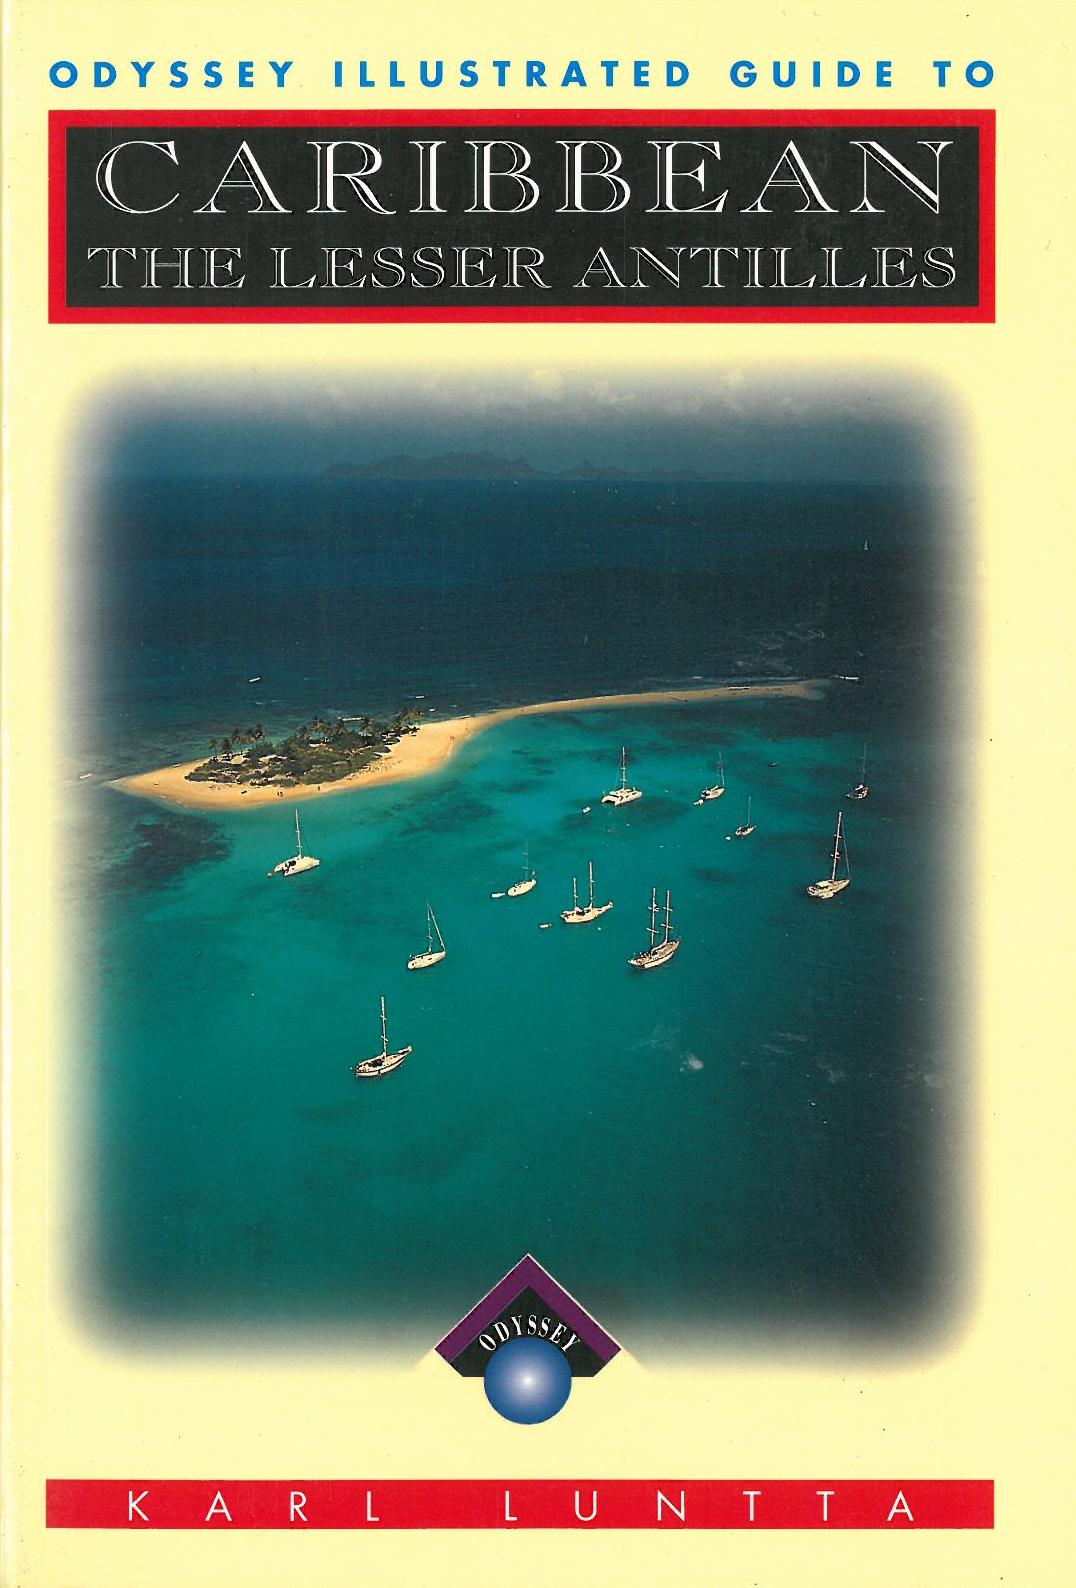 Caribbean - The Lesser Antilles, Odyssey Guide